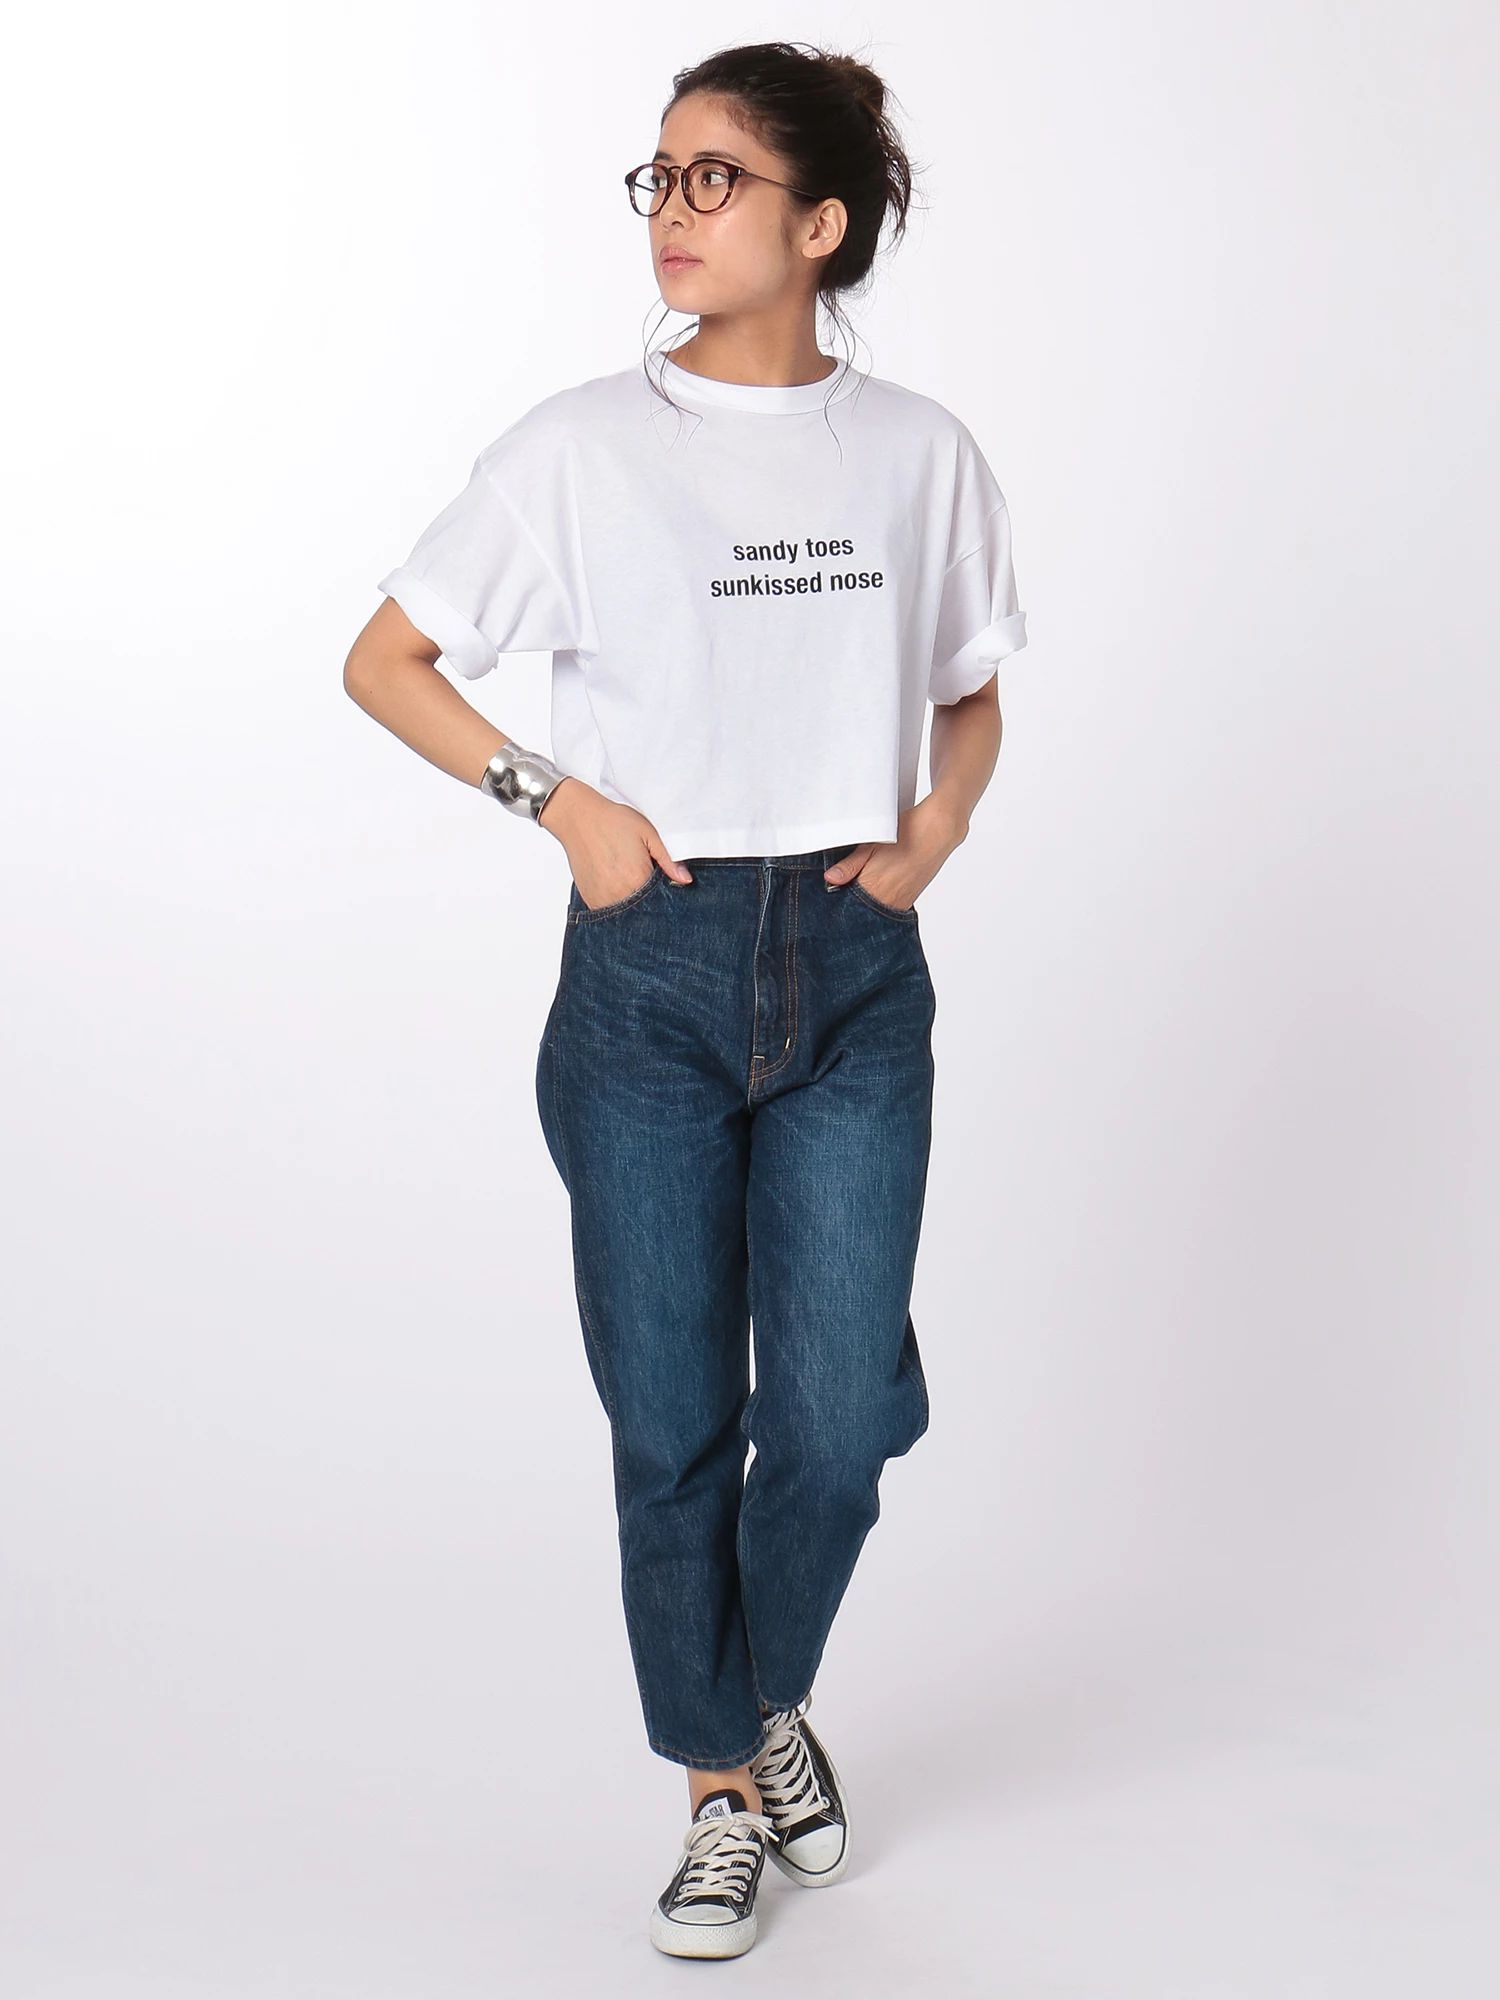 Sandy toes Tシャツ